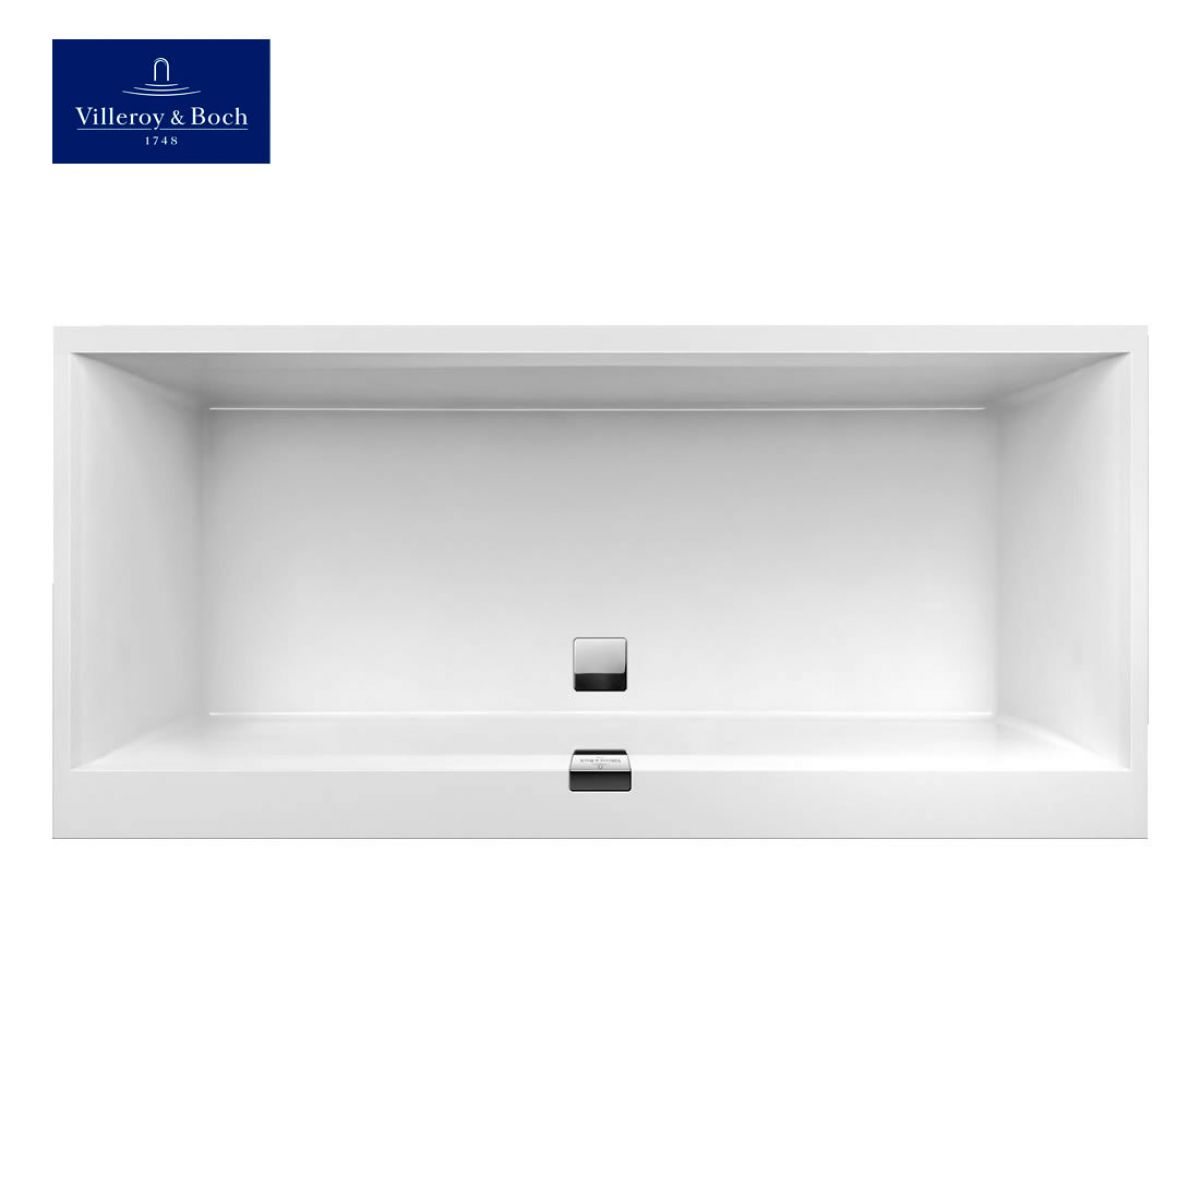 Villeroy and boch squaro edge 12 luxury bath uk bathrooms - Boch and villeroy ...